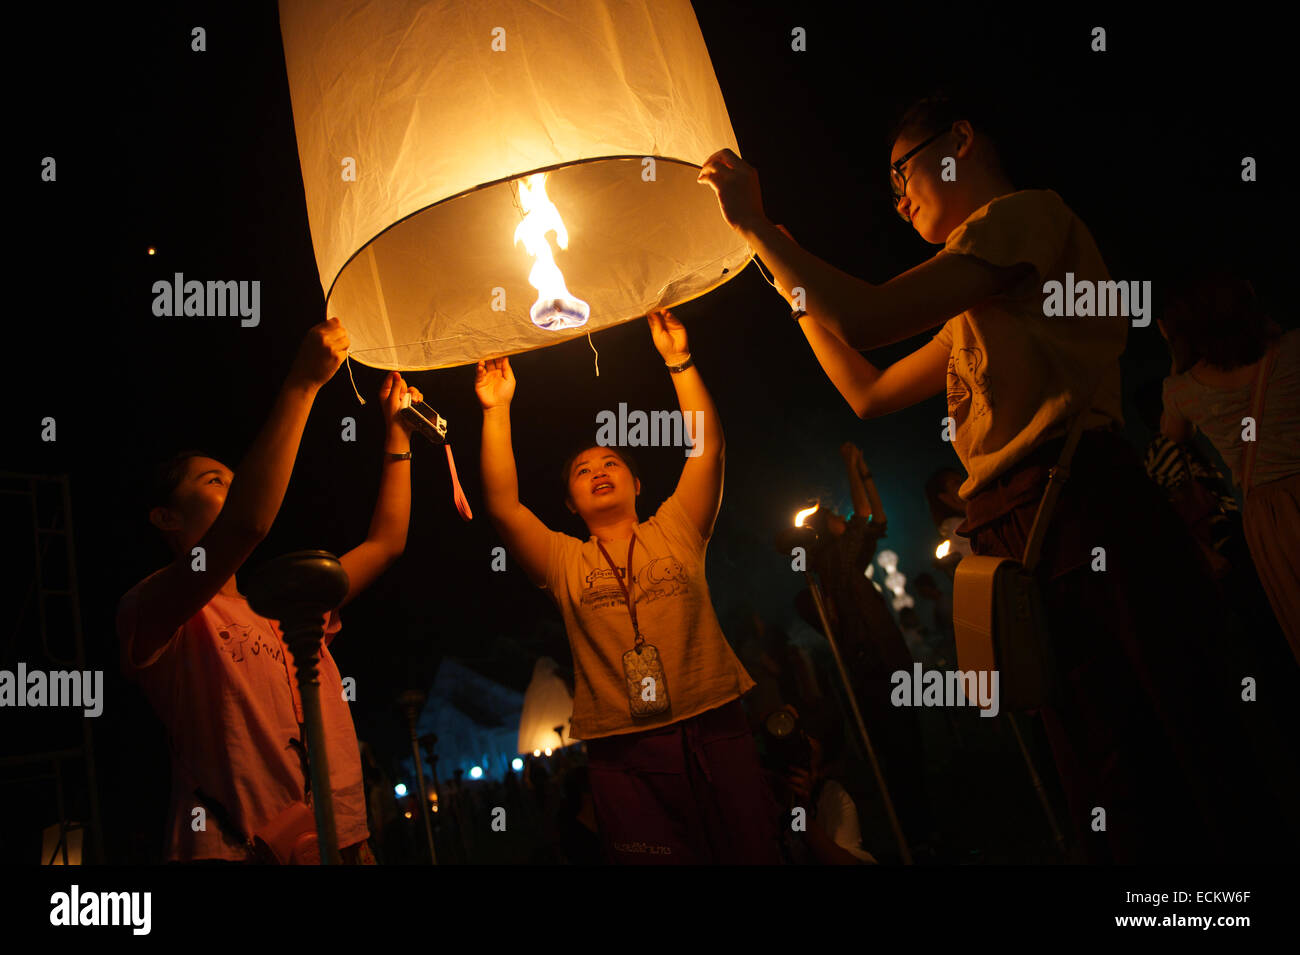 CHIANG MAI, THAILAND - OCTOBER 25, 2014: Group of young Thai people launch a sky lantern on the night of the Yee - Stock Image